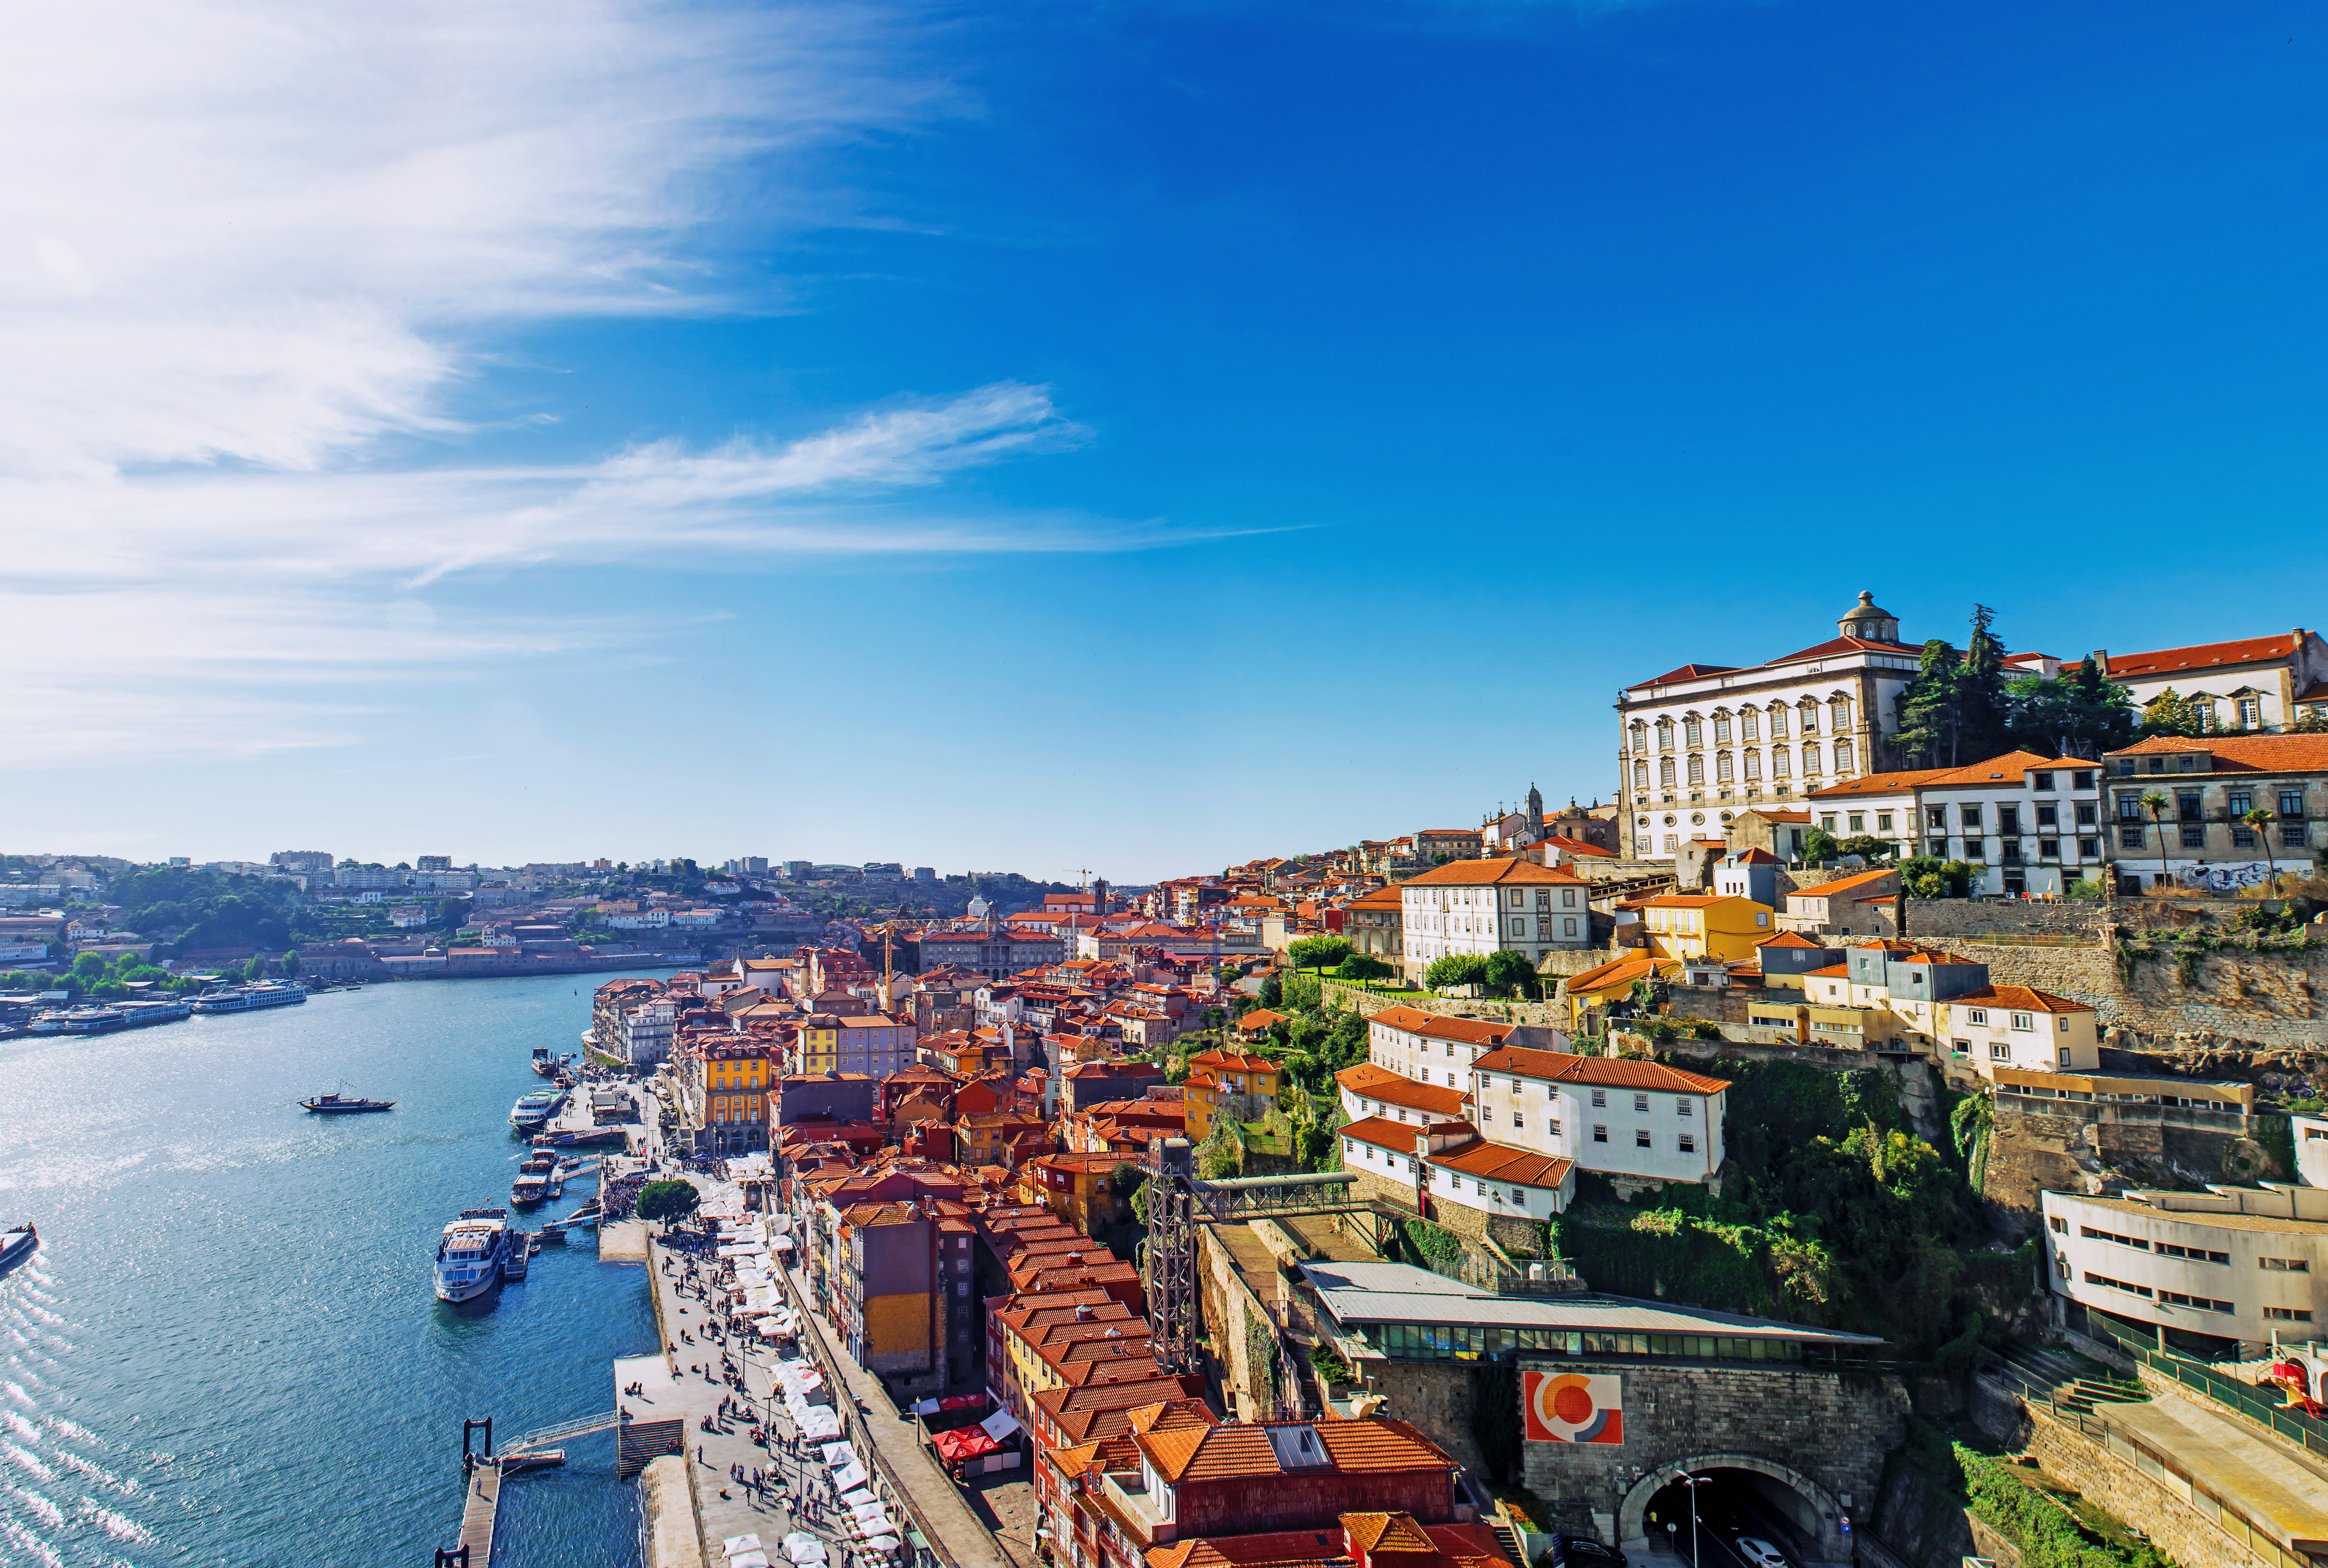 Where to invest in real estate for the Portuguese Golden Visa in 2020?